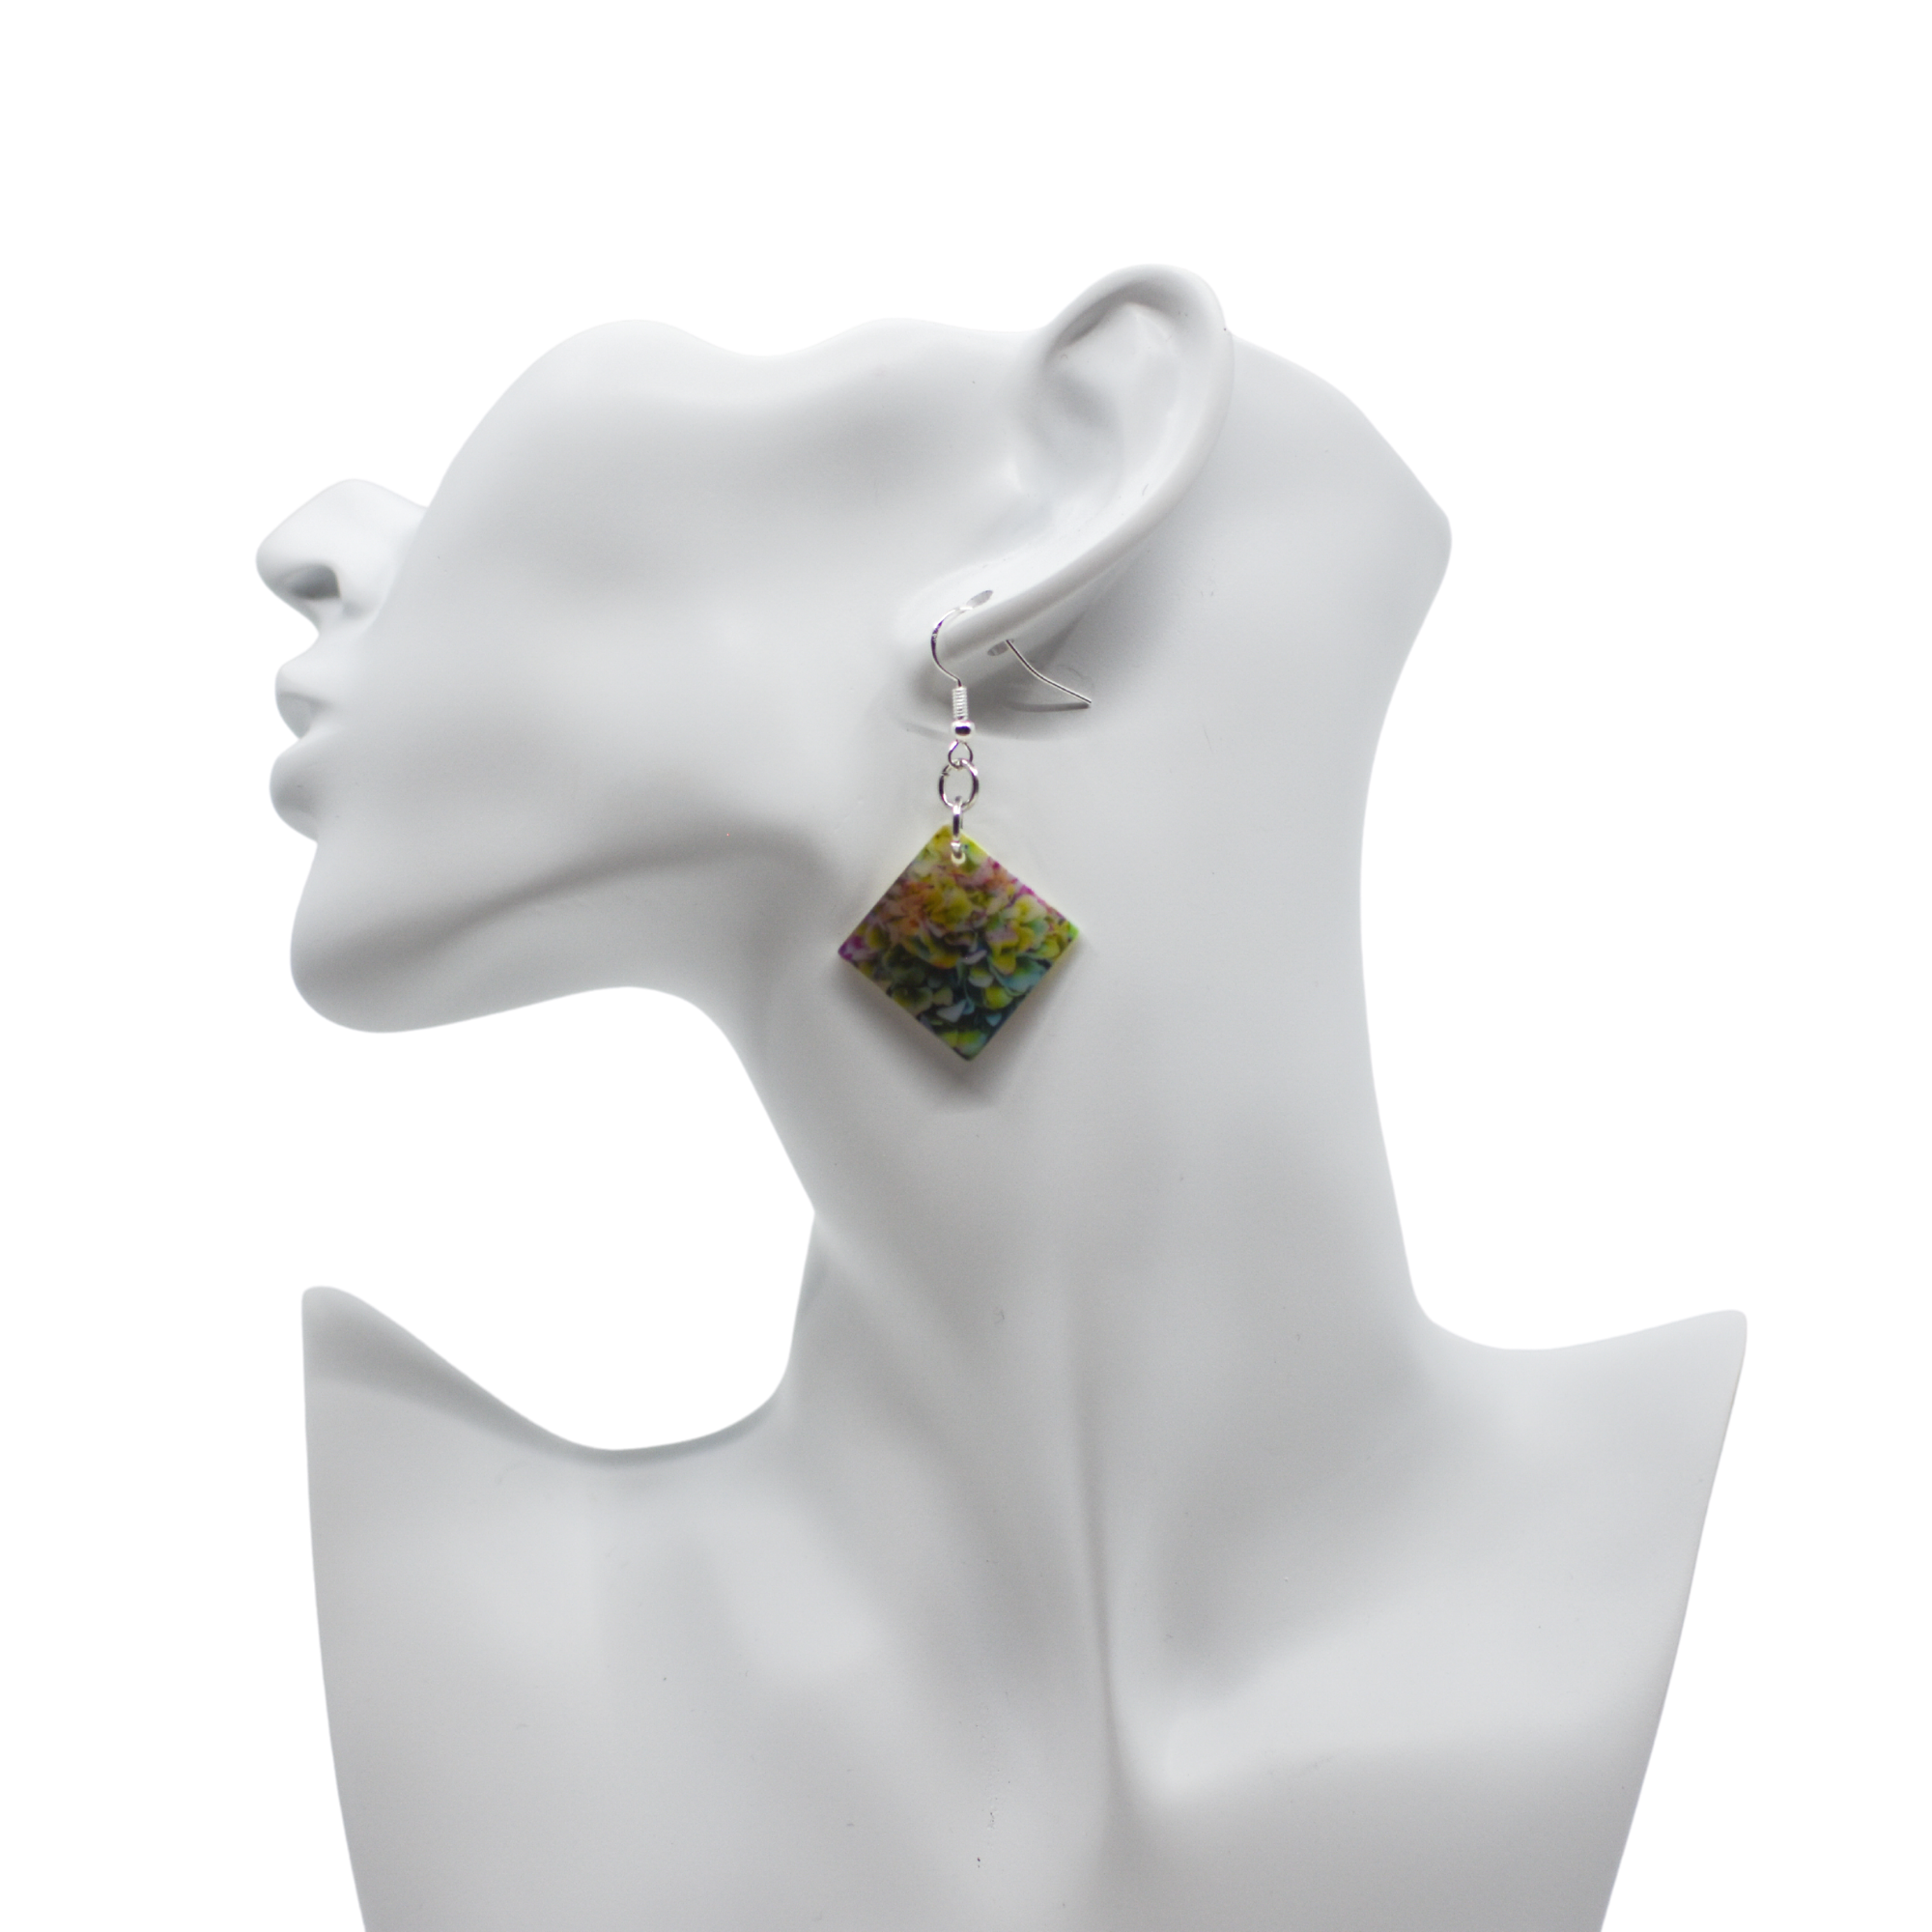 Standard view of Heavenly Hydrangea Mother of Pearl Earrings | Wear the Wonder